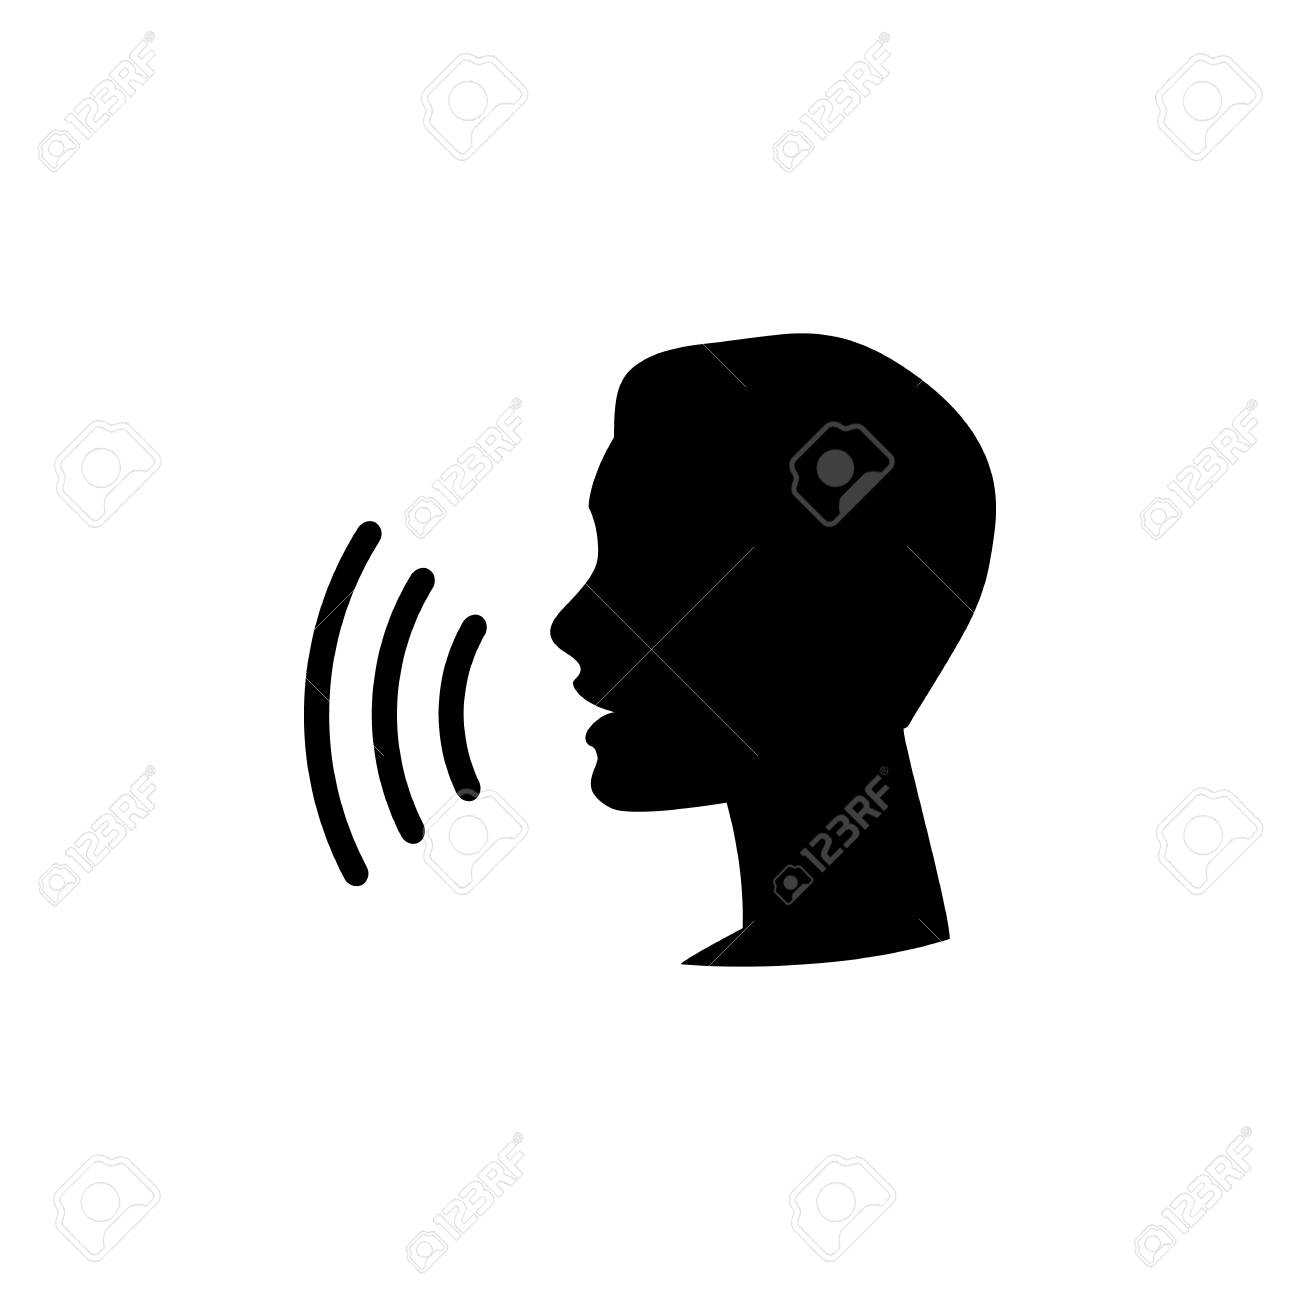 Voice control icon. Speak or talk recognition linear icon, speaking and talking command, sound commander or speech dictator head, vector illustration - 121670468